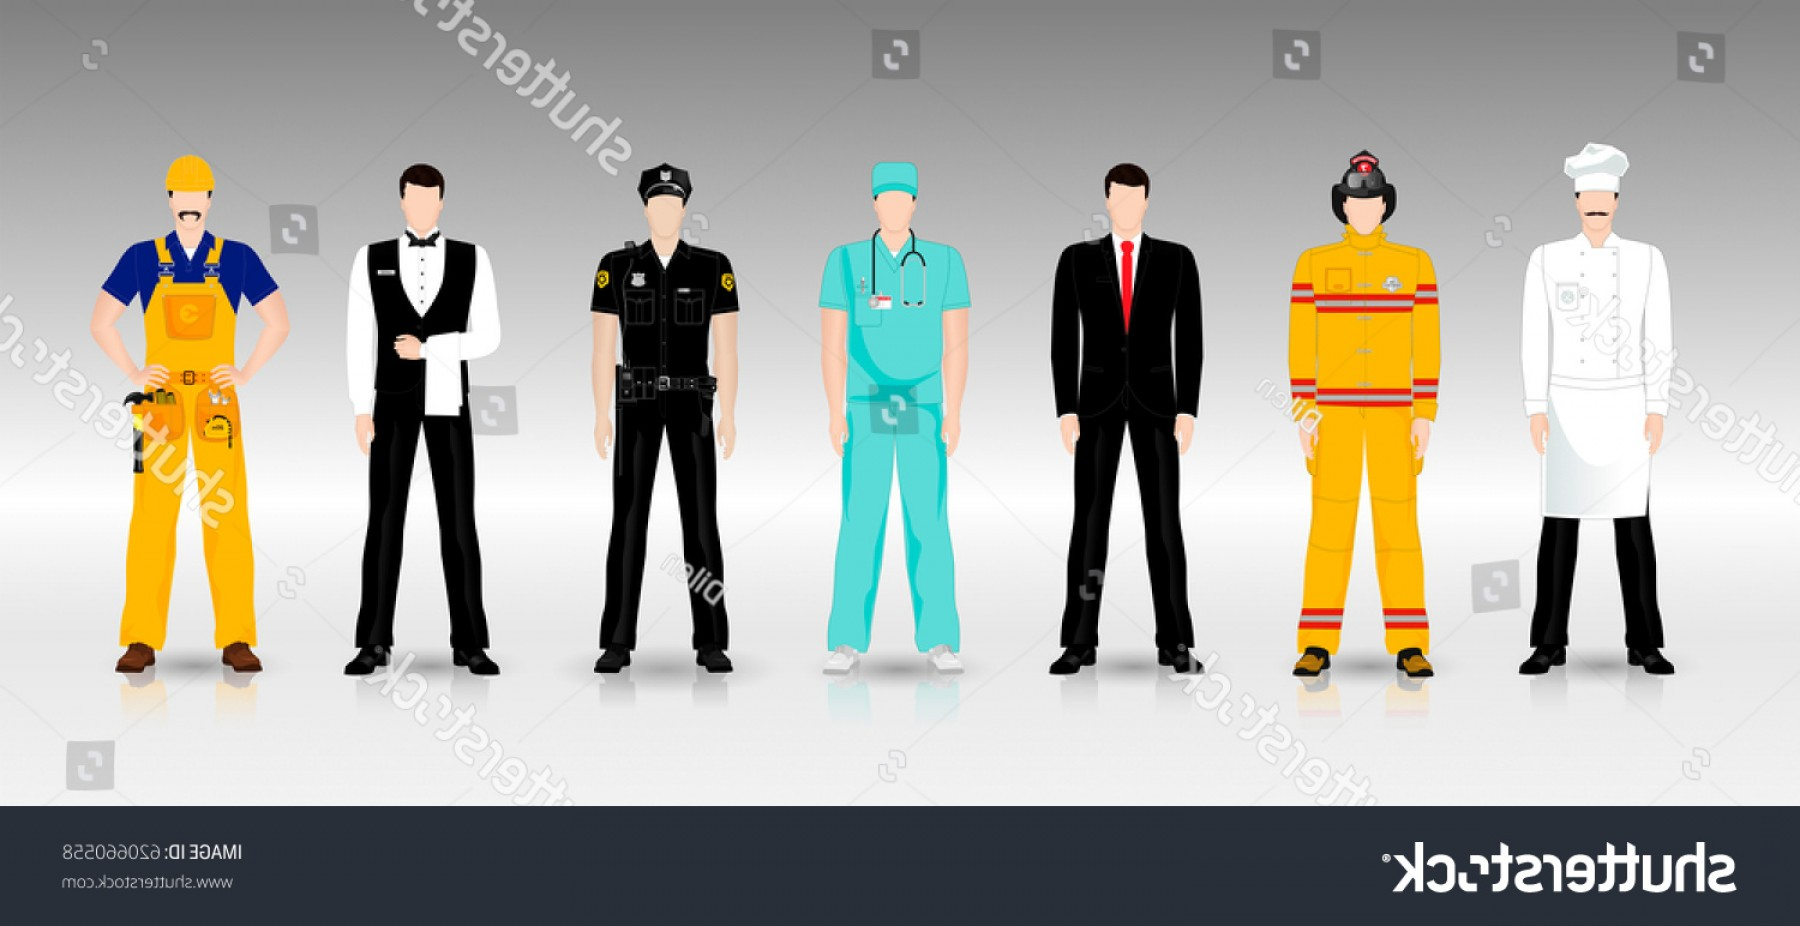 Growth Vector People: People Different Professions Working Clothes Full